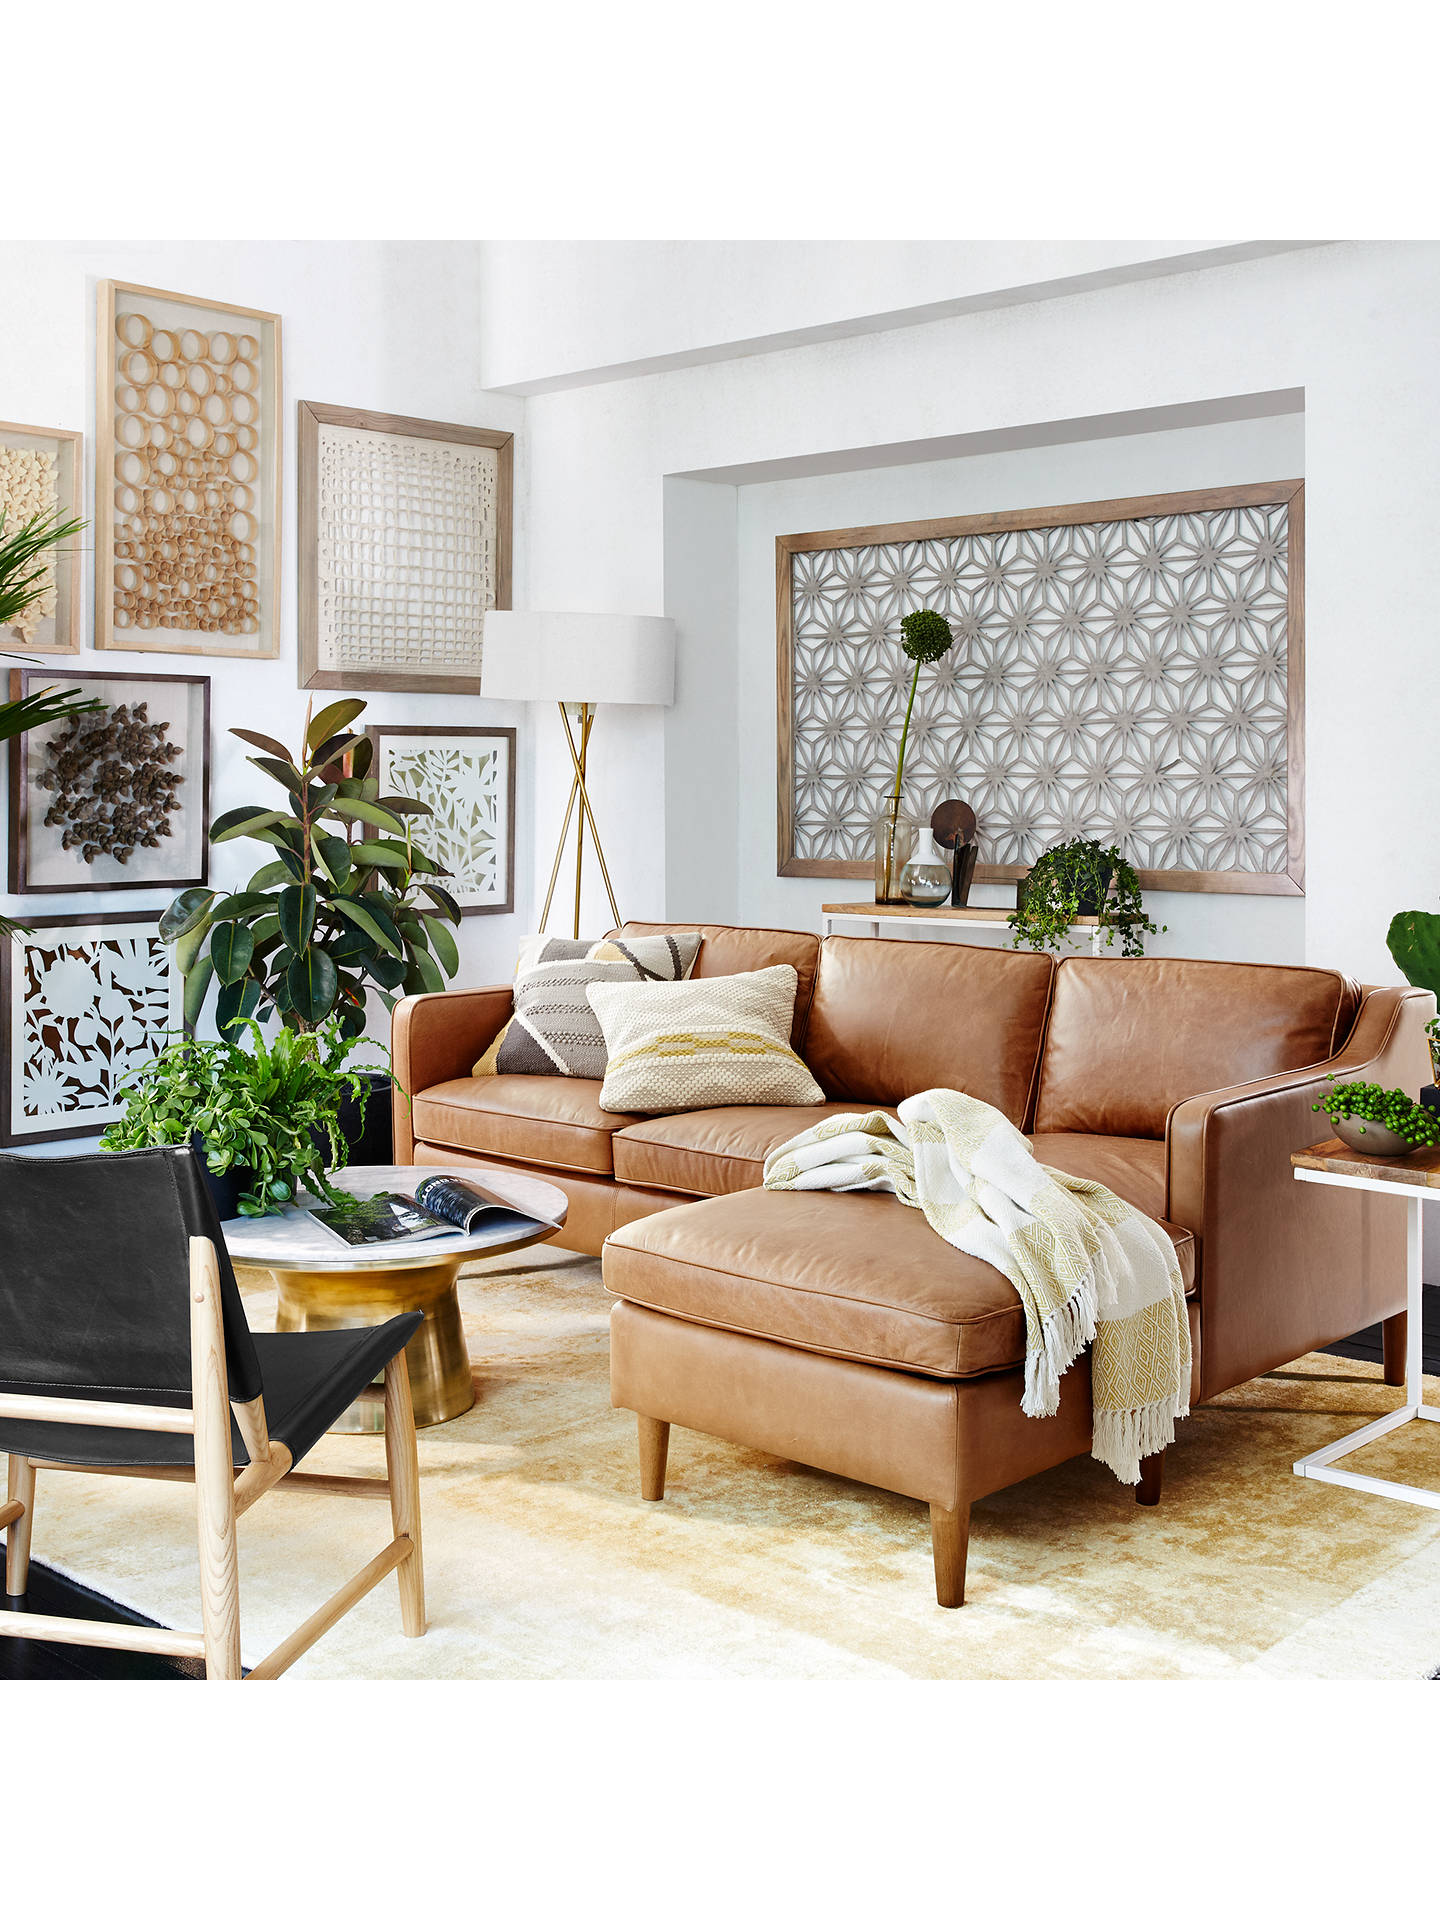 West Elm Hamilton Leather Sectional Left Loveseat Rhf Chaise Sofa Online At Johnlewis